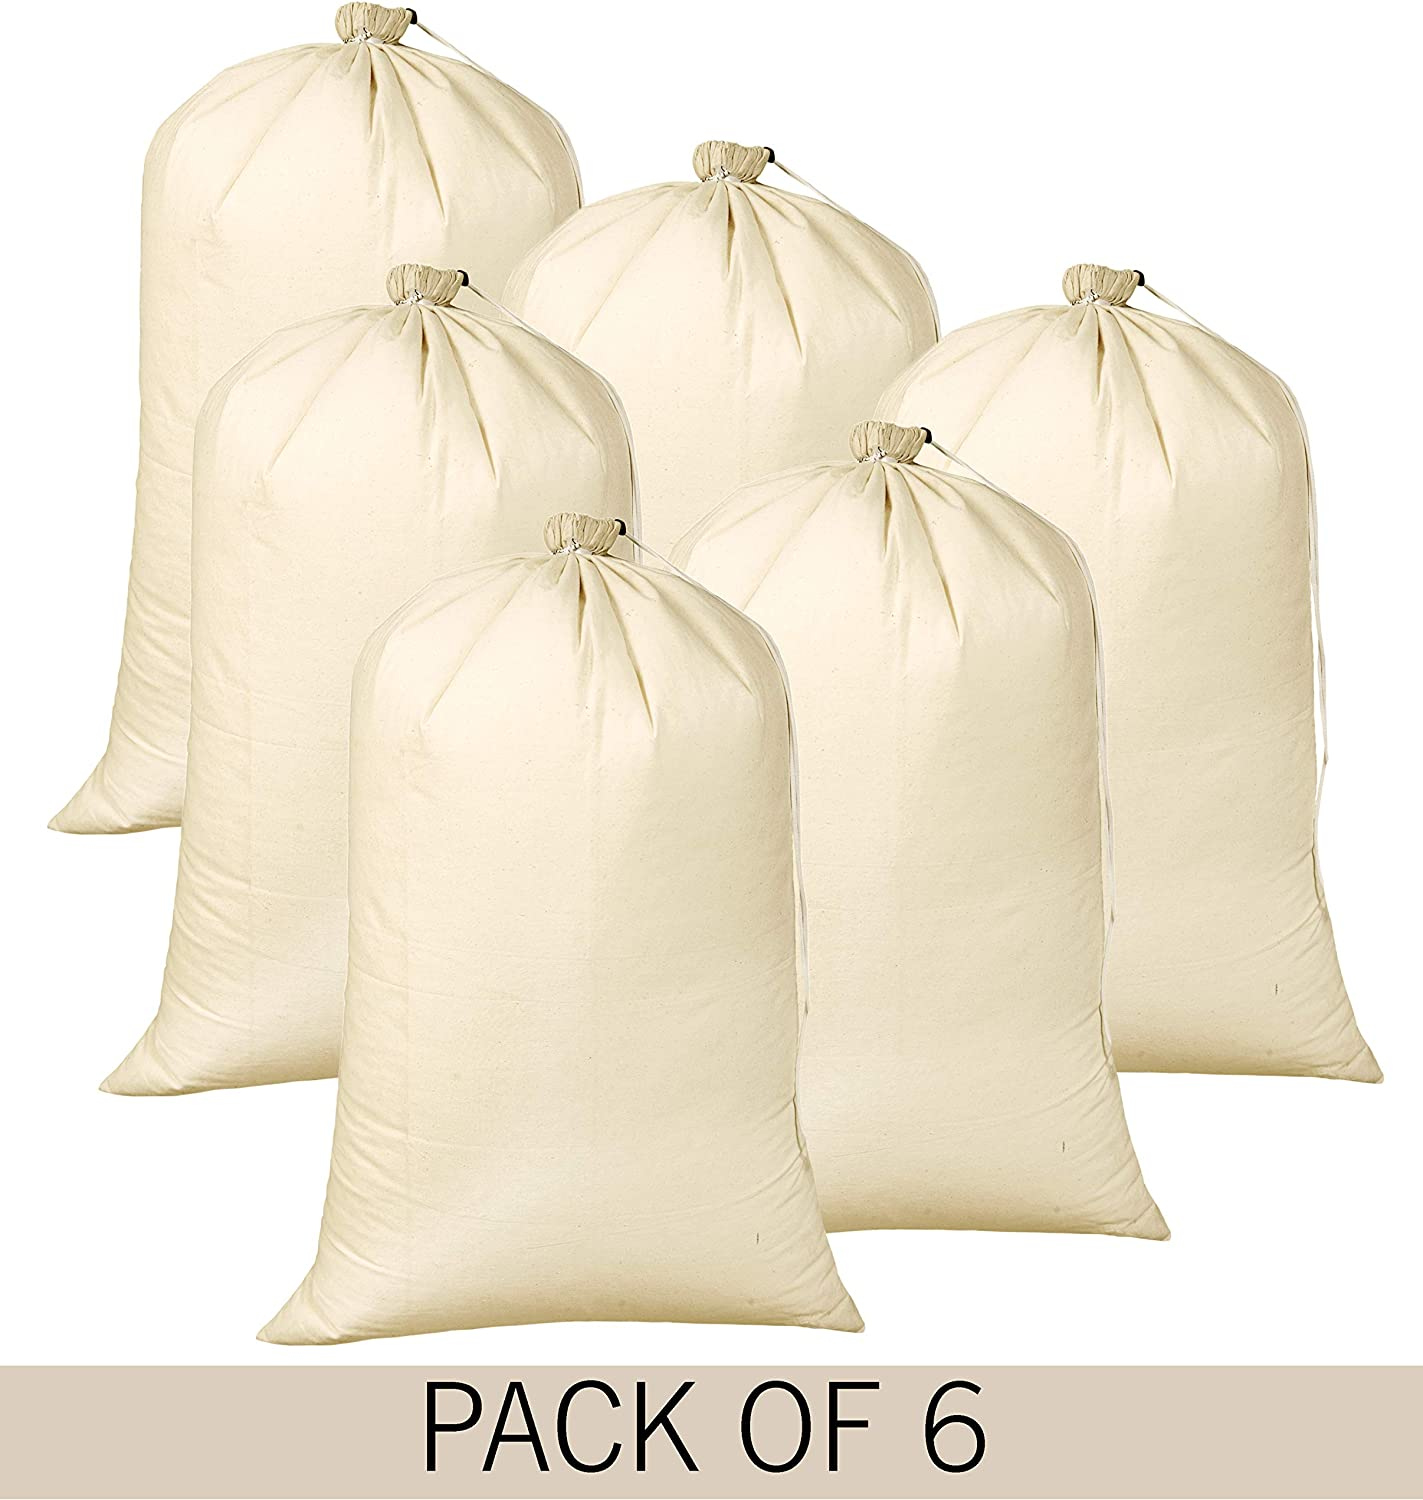 Cotton Laundry Bag With Drawstring,Heavy Duty Laundry Bag,Canvas Laundry Bags, Easy To Carry,Washable Commercial Laundry Bag,Santa Bag,Laundry Hamper Bags 24x36 inch -Natural (Set Of 6 Pieces)